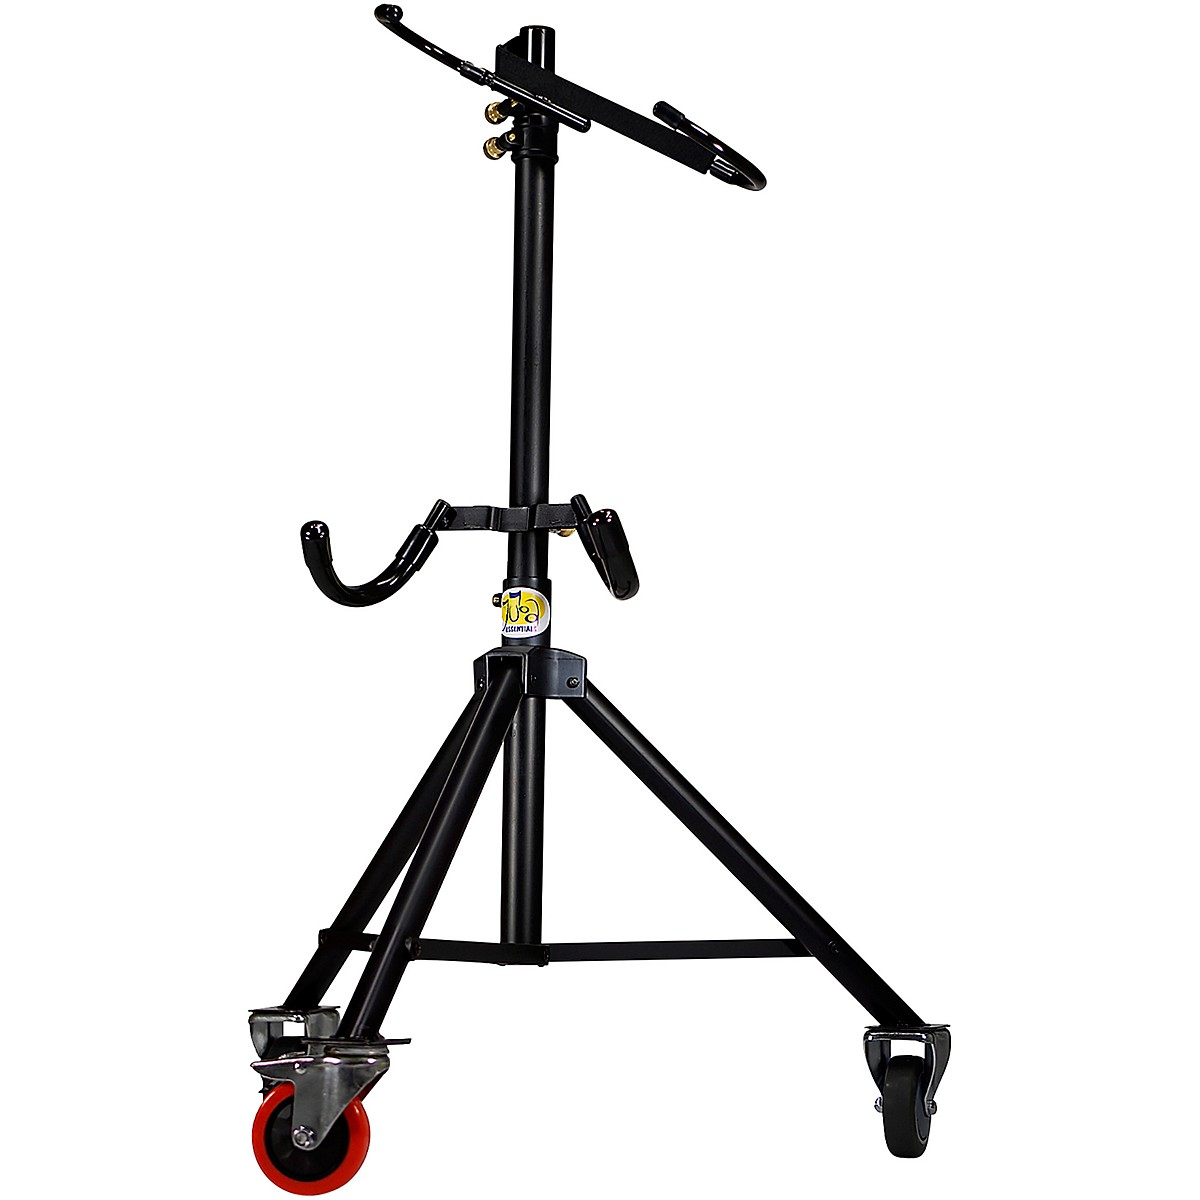 Tuba Essentials The Hug Adjustable Tuba Stand for 3/4 Size Left Side Mouthpiece Instruments